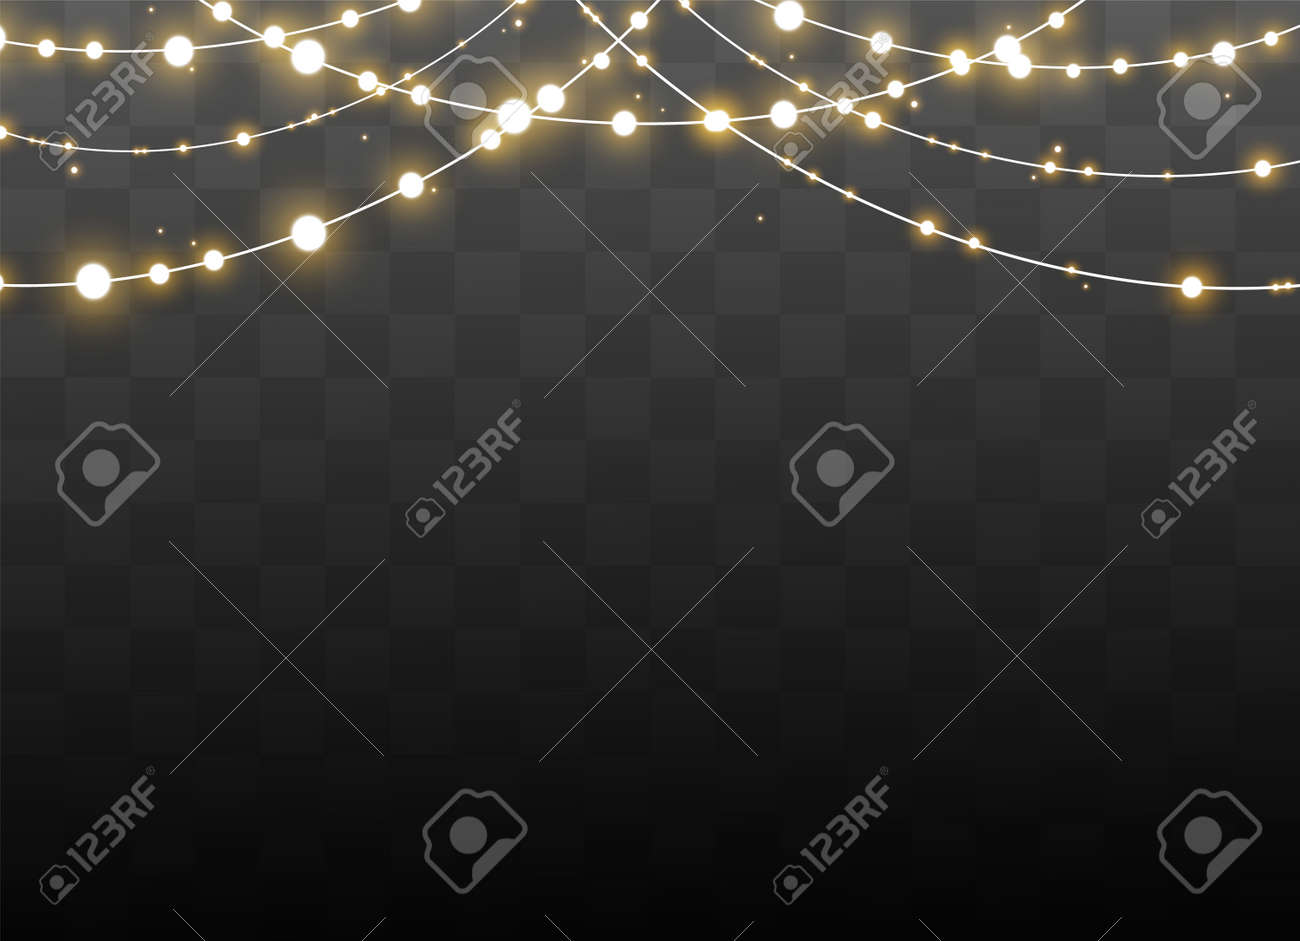 Christmas lights isolated on transparent background. Xmas glowing garland. Vector illustration - 155230786